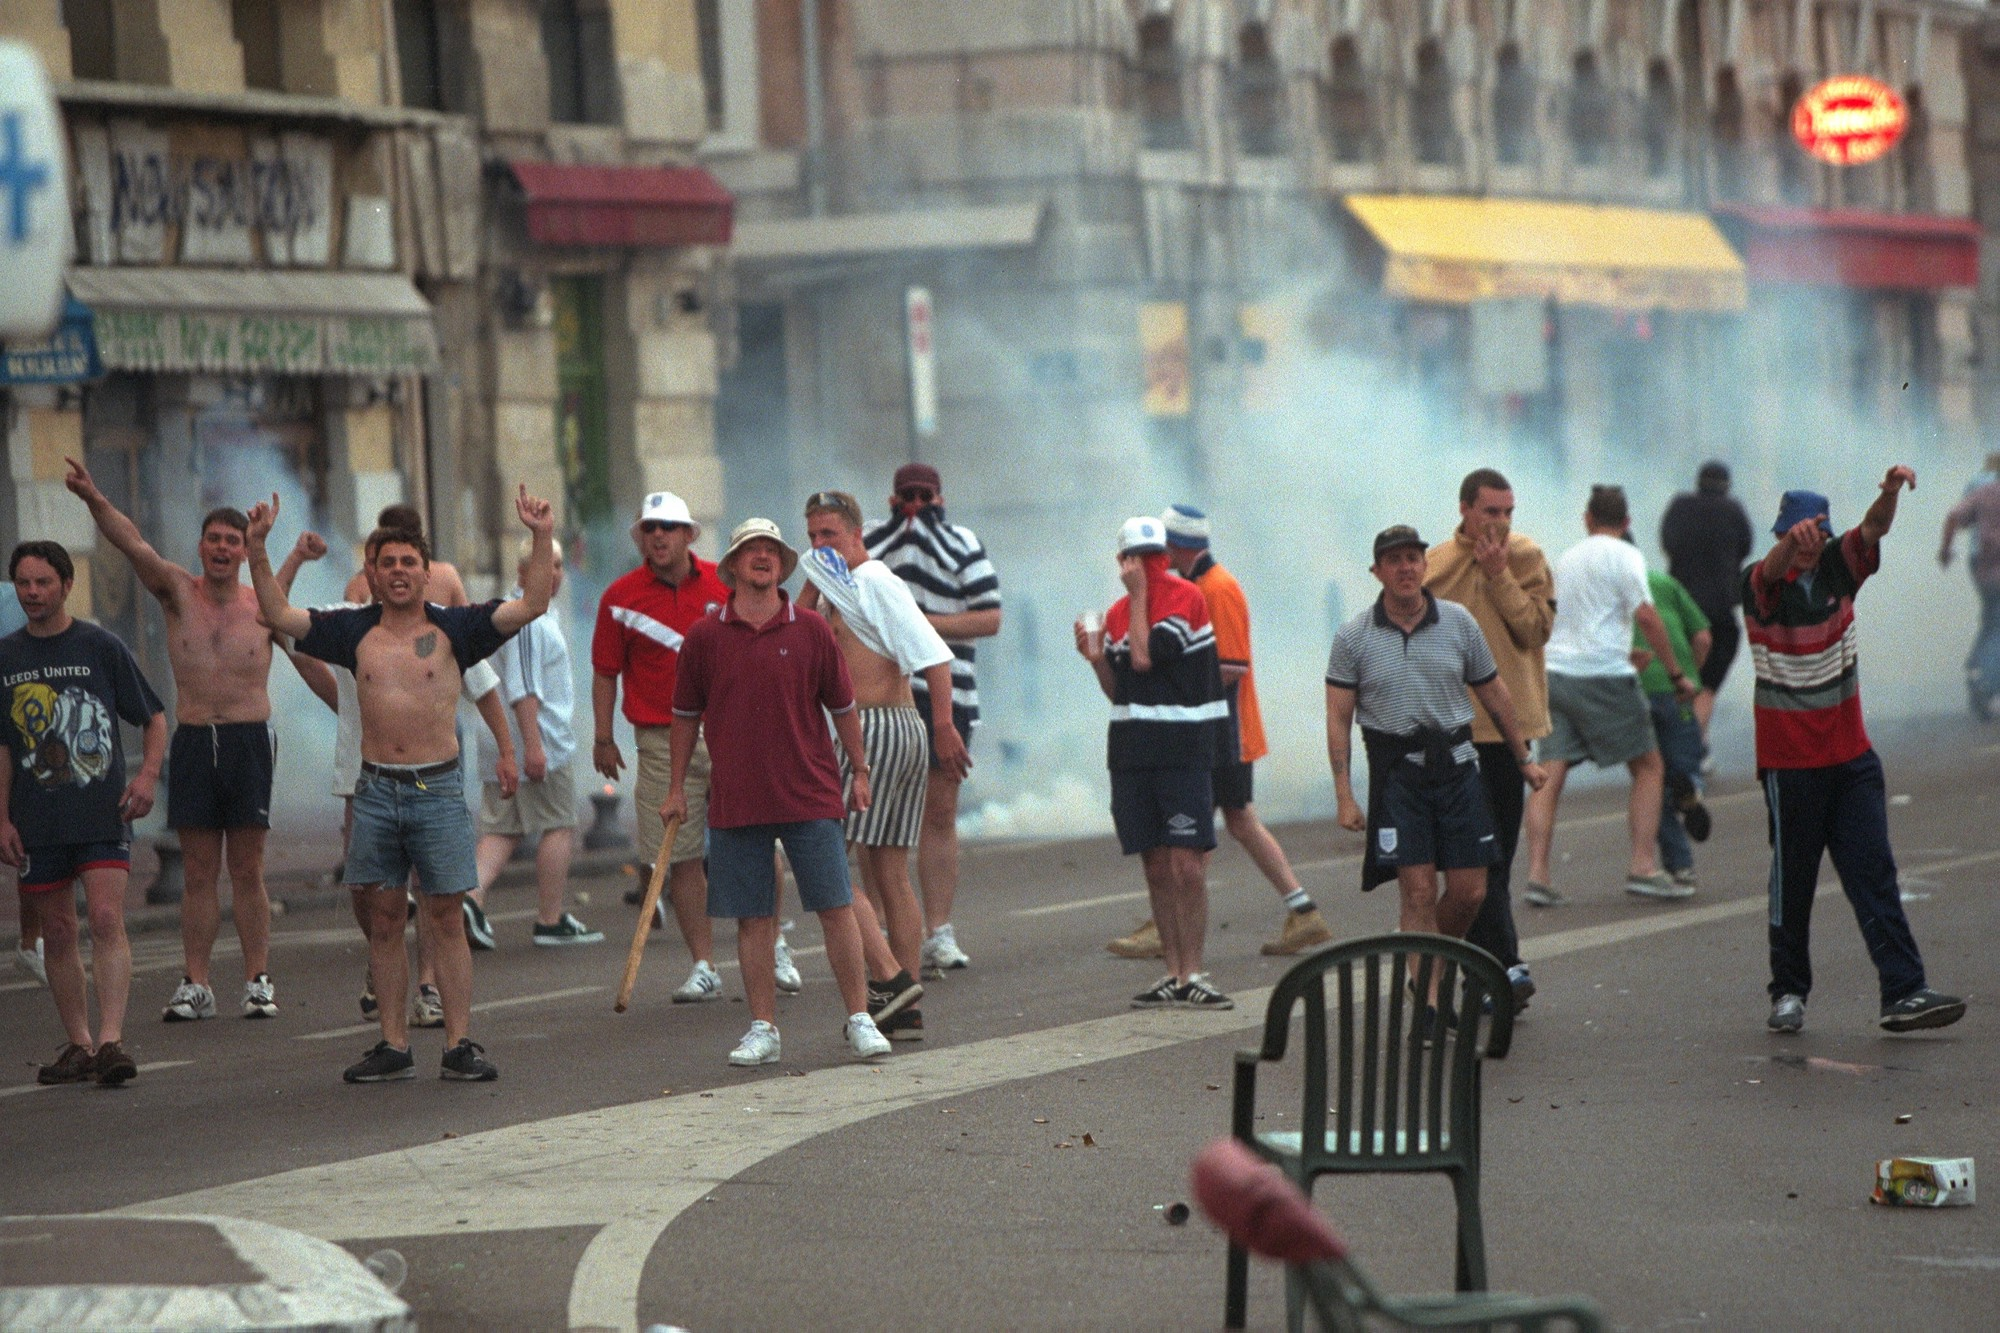 british soccer hooligans exported fan violence and this